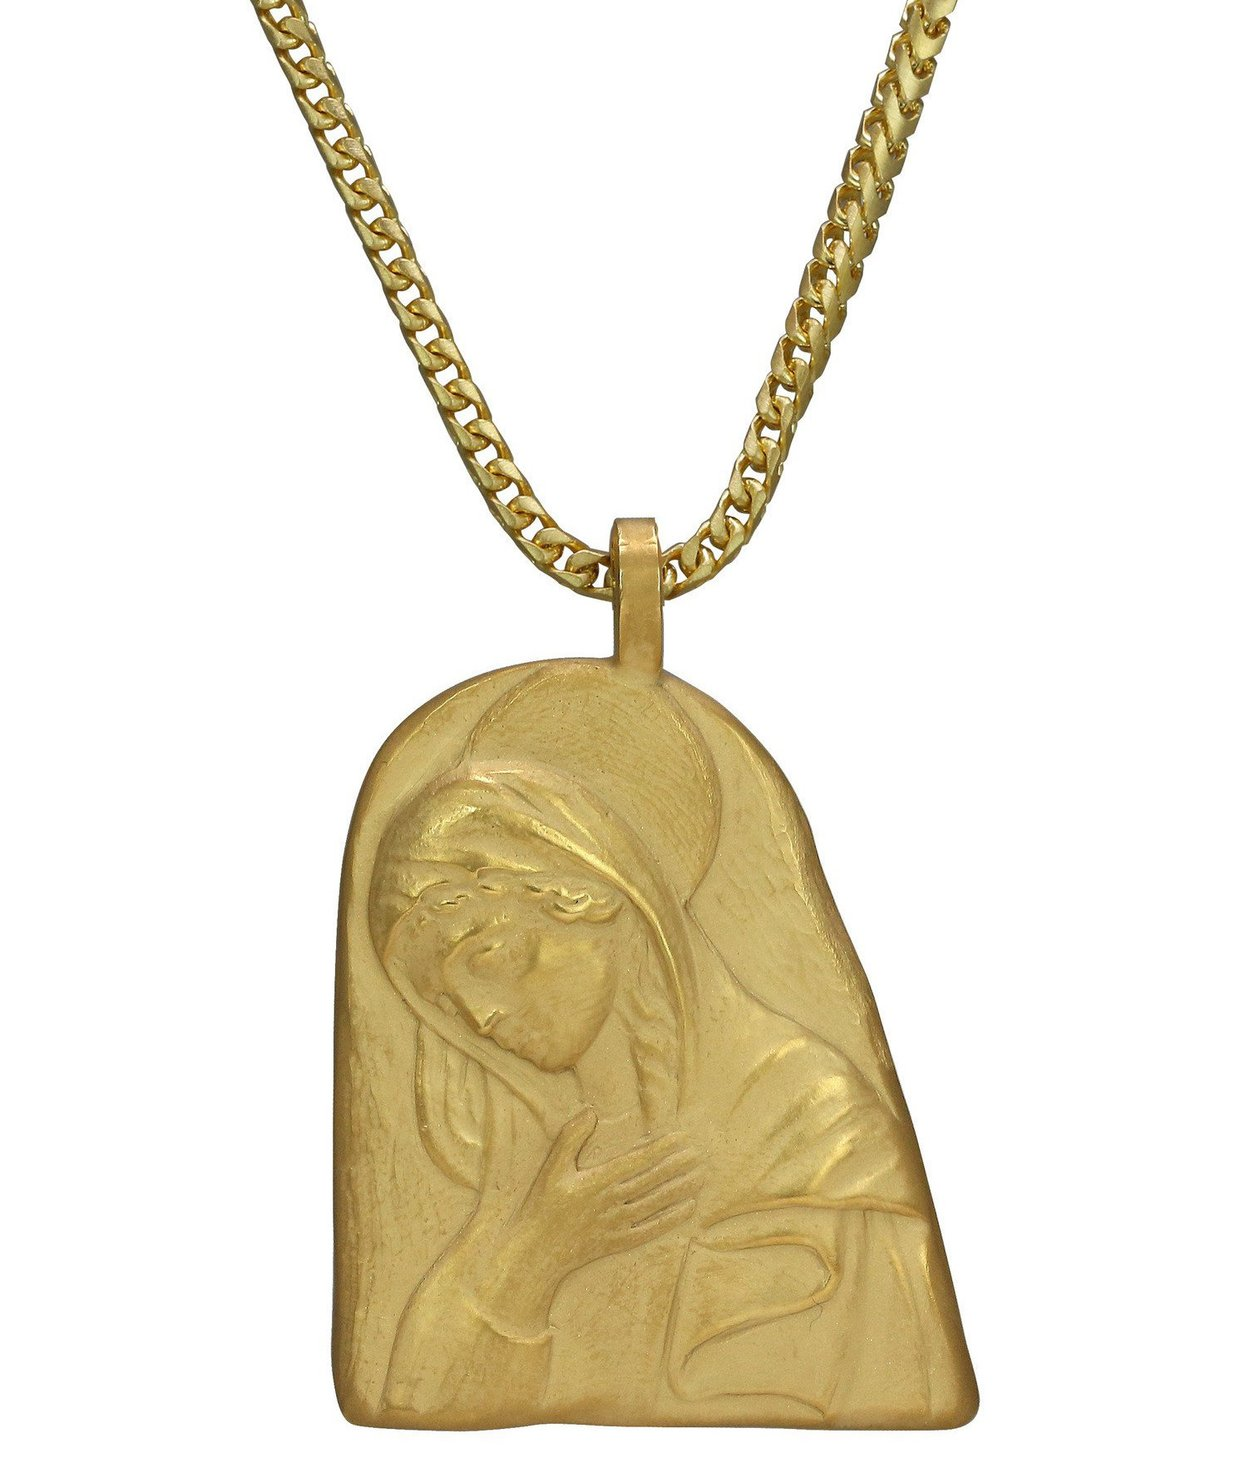 One of the Renaissance-inspired pieces from Kanye West's new Yeezy jewellery collection, at yeezysupply.com